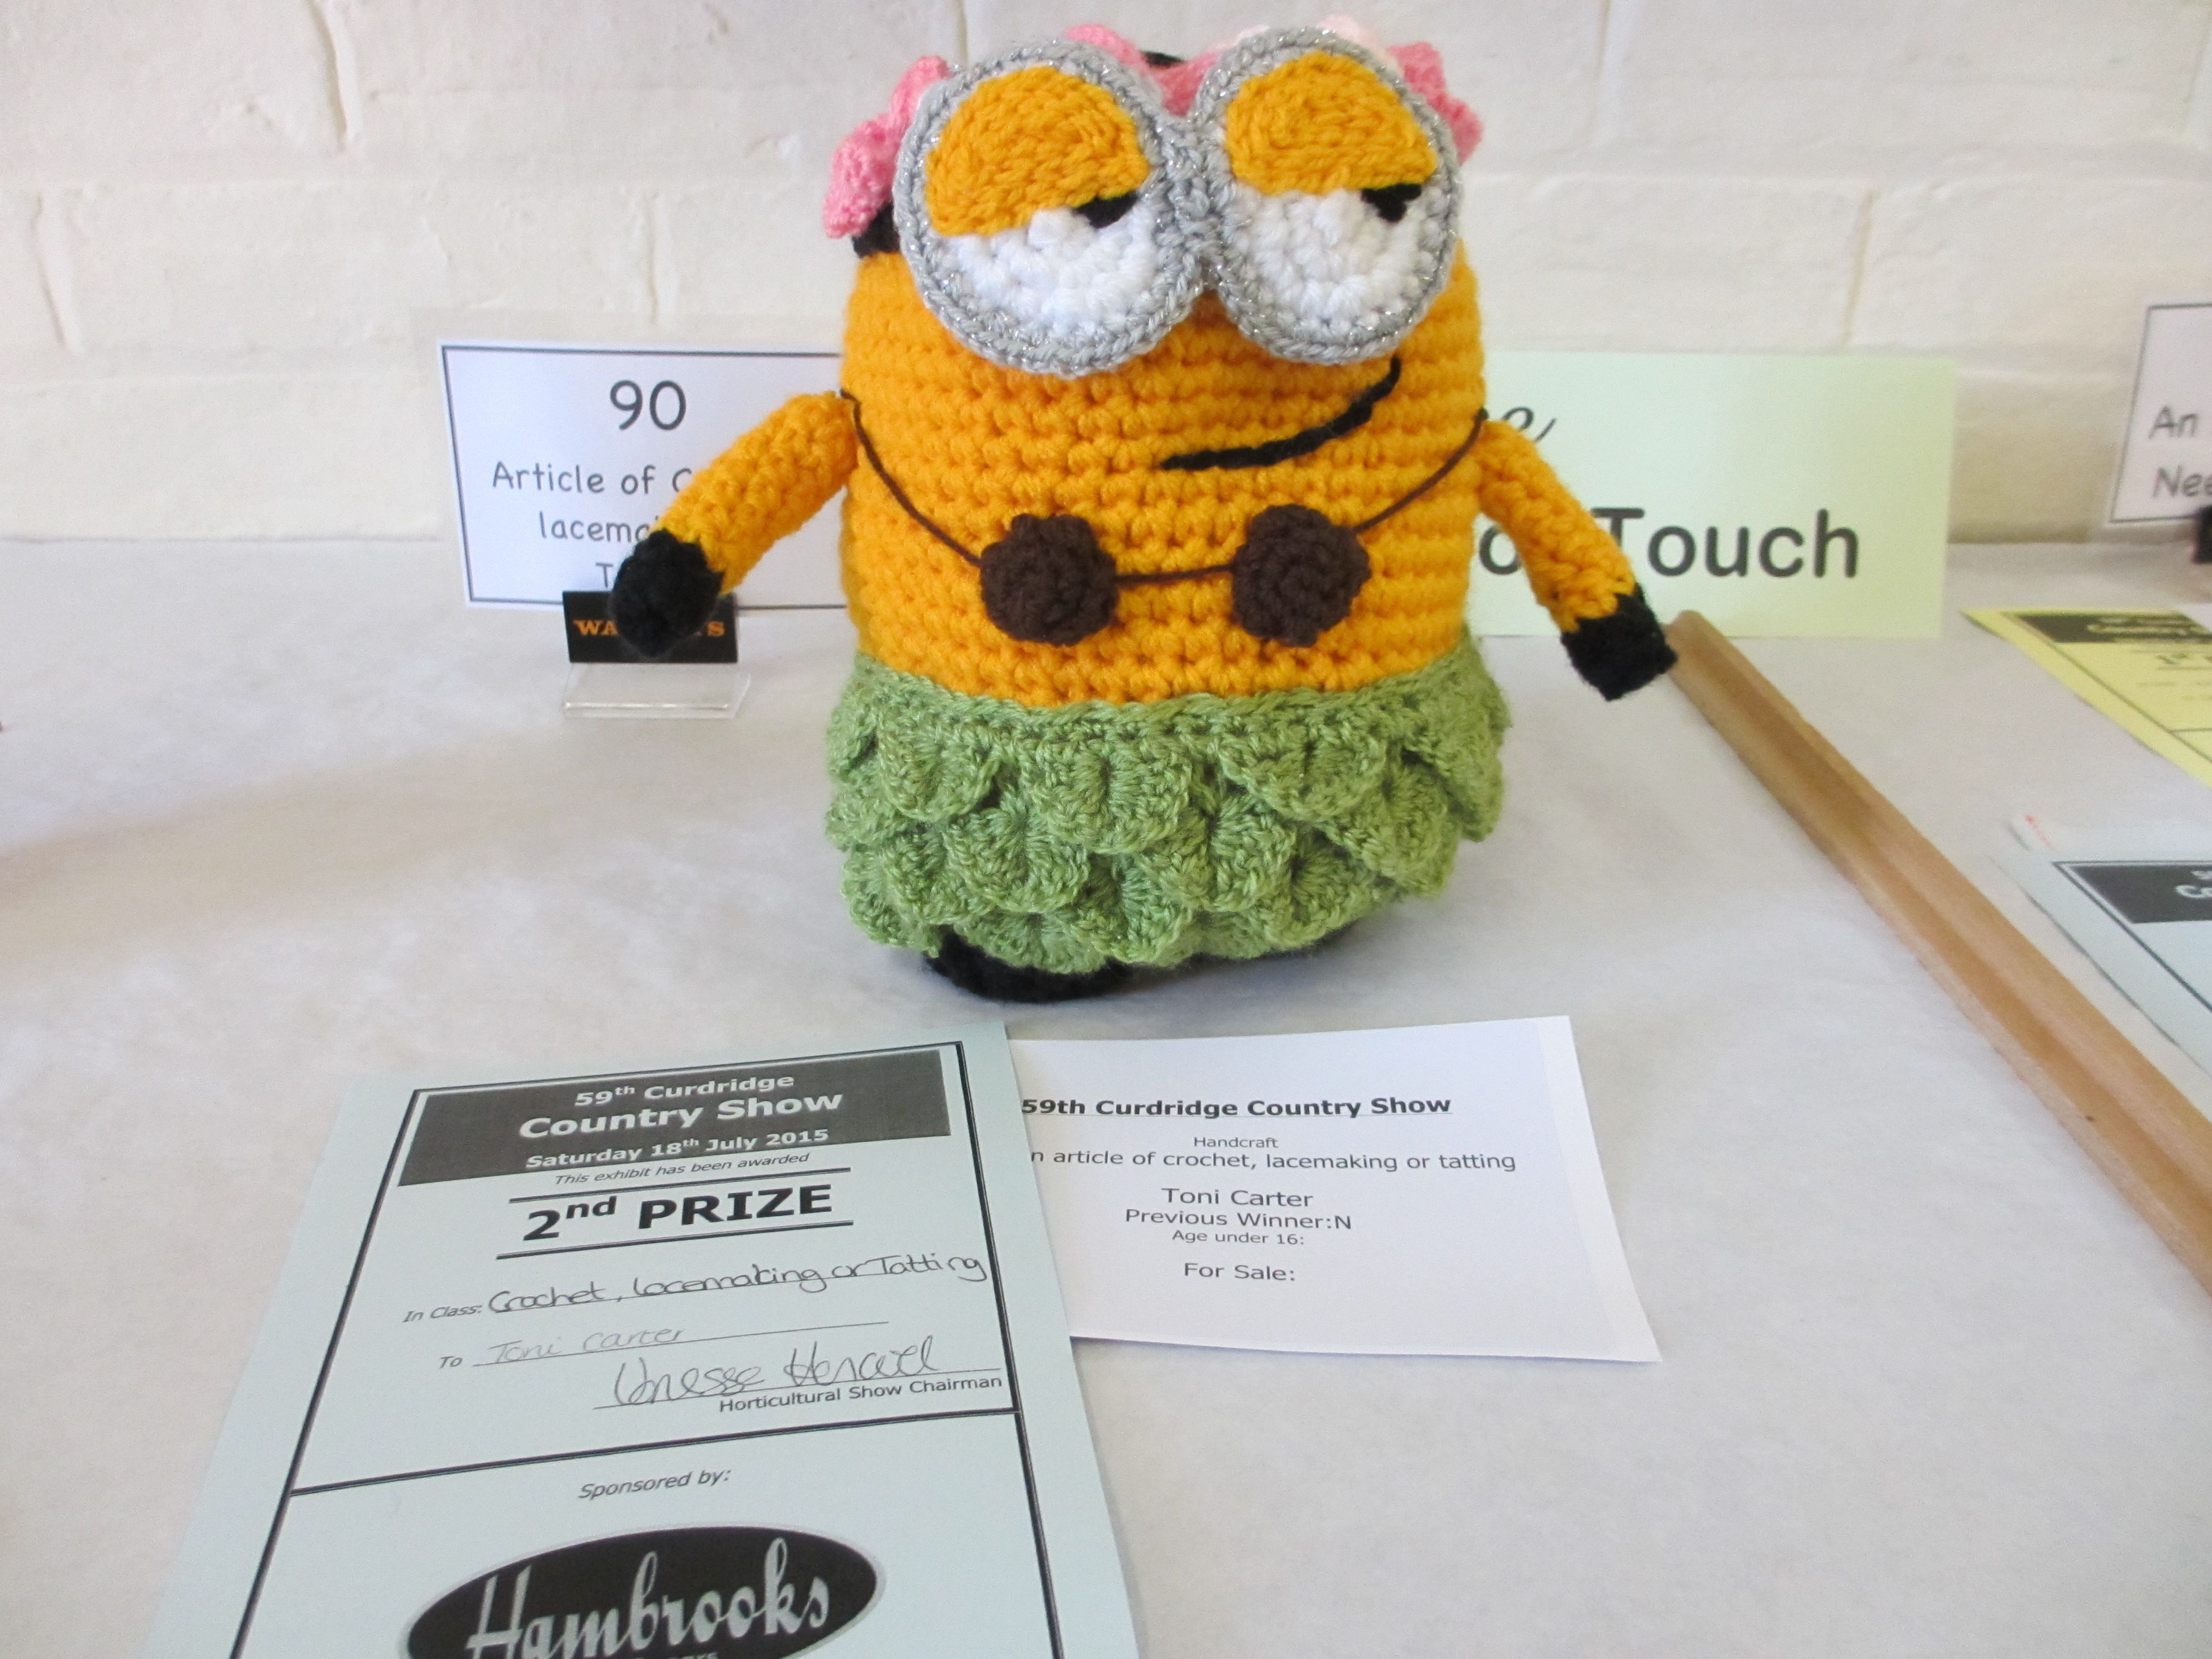 Article of Crochet & Winner of most popular exhibit